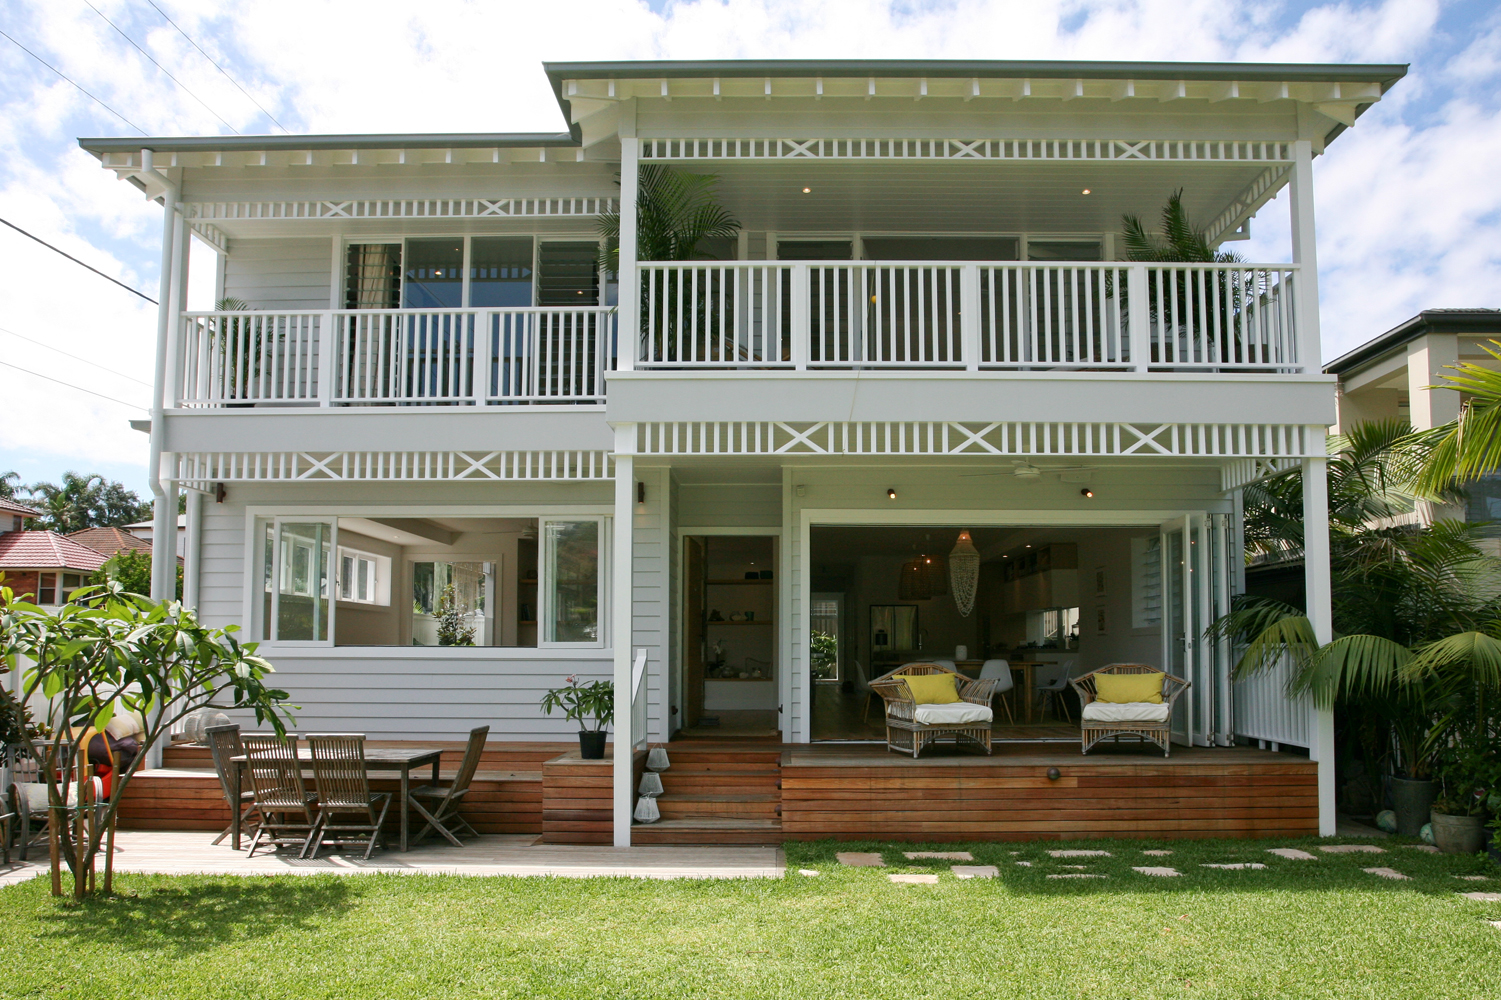 Hamptons style beach house sydney australia beach living for Beach house designs sydney